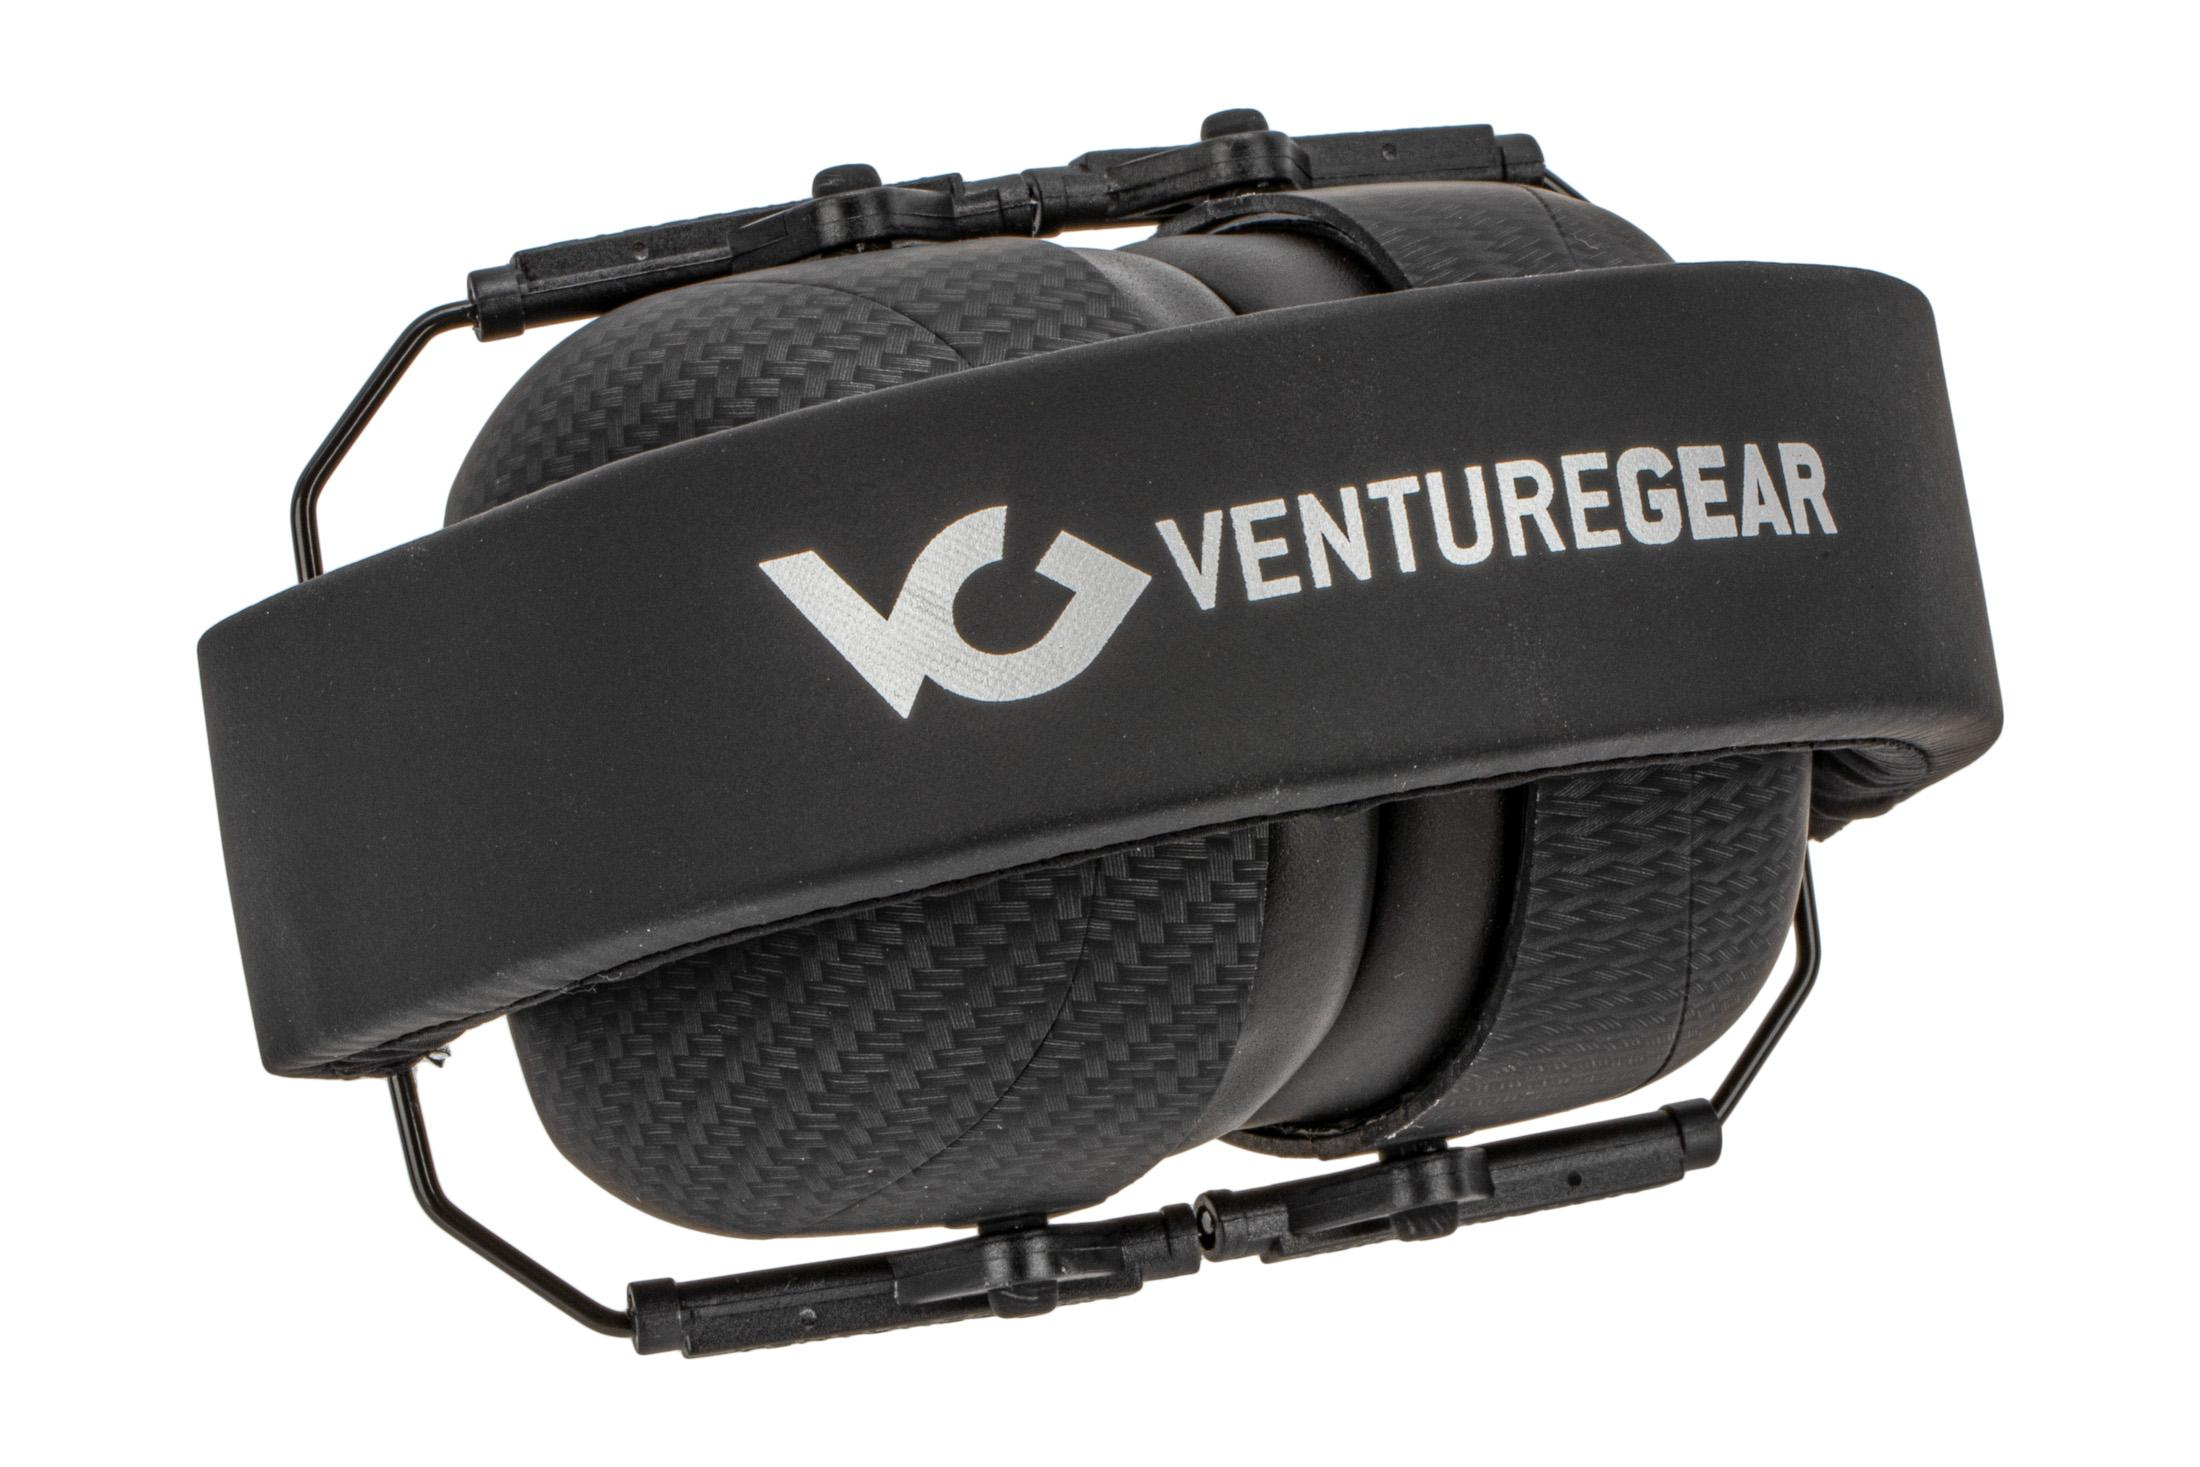 Pyramex Venture Gear over-ear VG80 carbon fiber hearing protection stores in a compact and handy package for range bags.